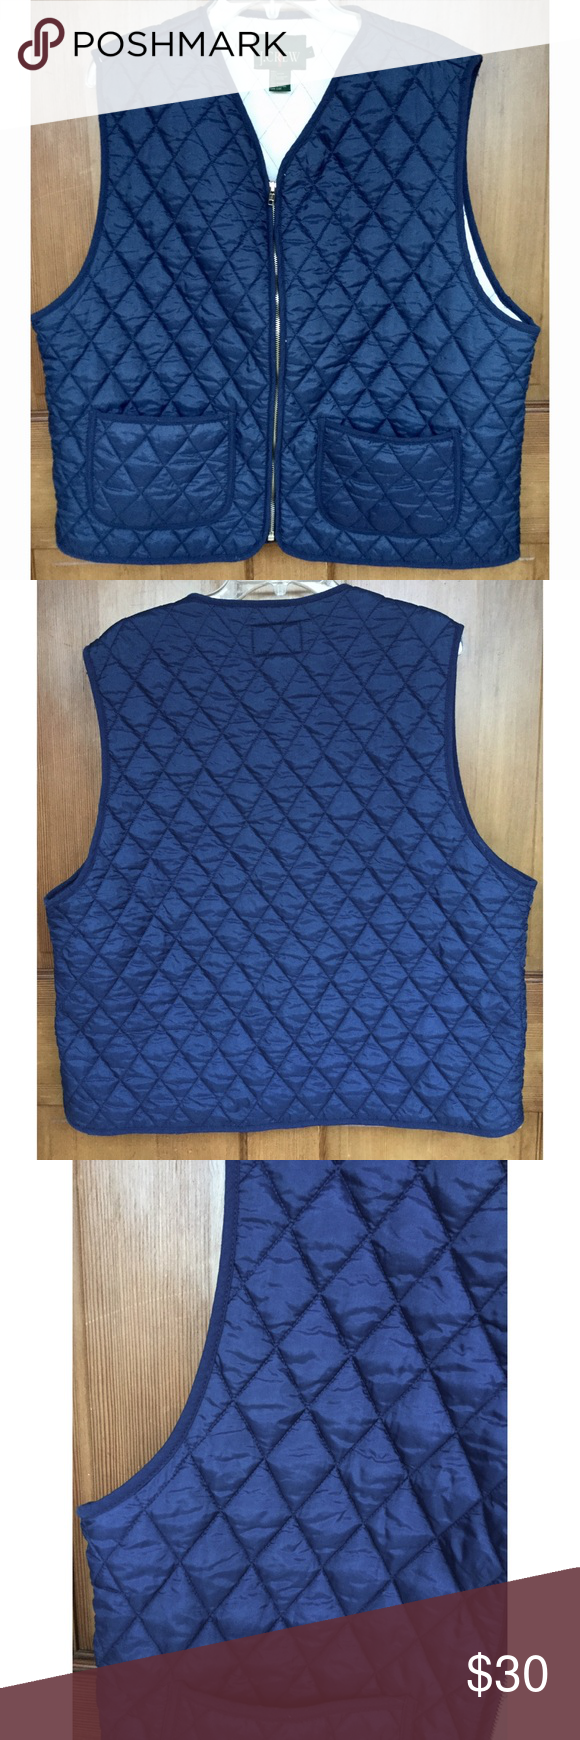 """J. Crew Vintage Nylon Quilted Vest L J. Crew Quilted Vest, L. Laying flat it measures approximately: shoulder to bottom 25"""", armpit to armpit 24"""".  Nice overall condition and smoke free home. Thanks! J. Crew Jackets & Coats Vests"""